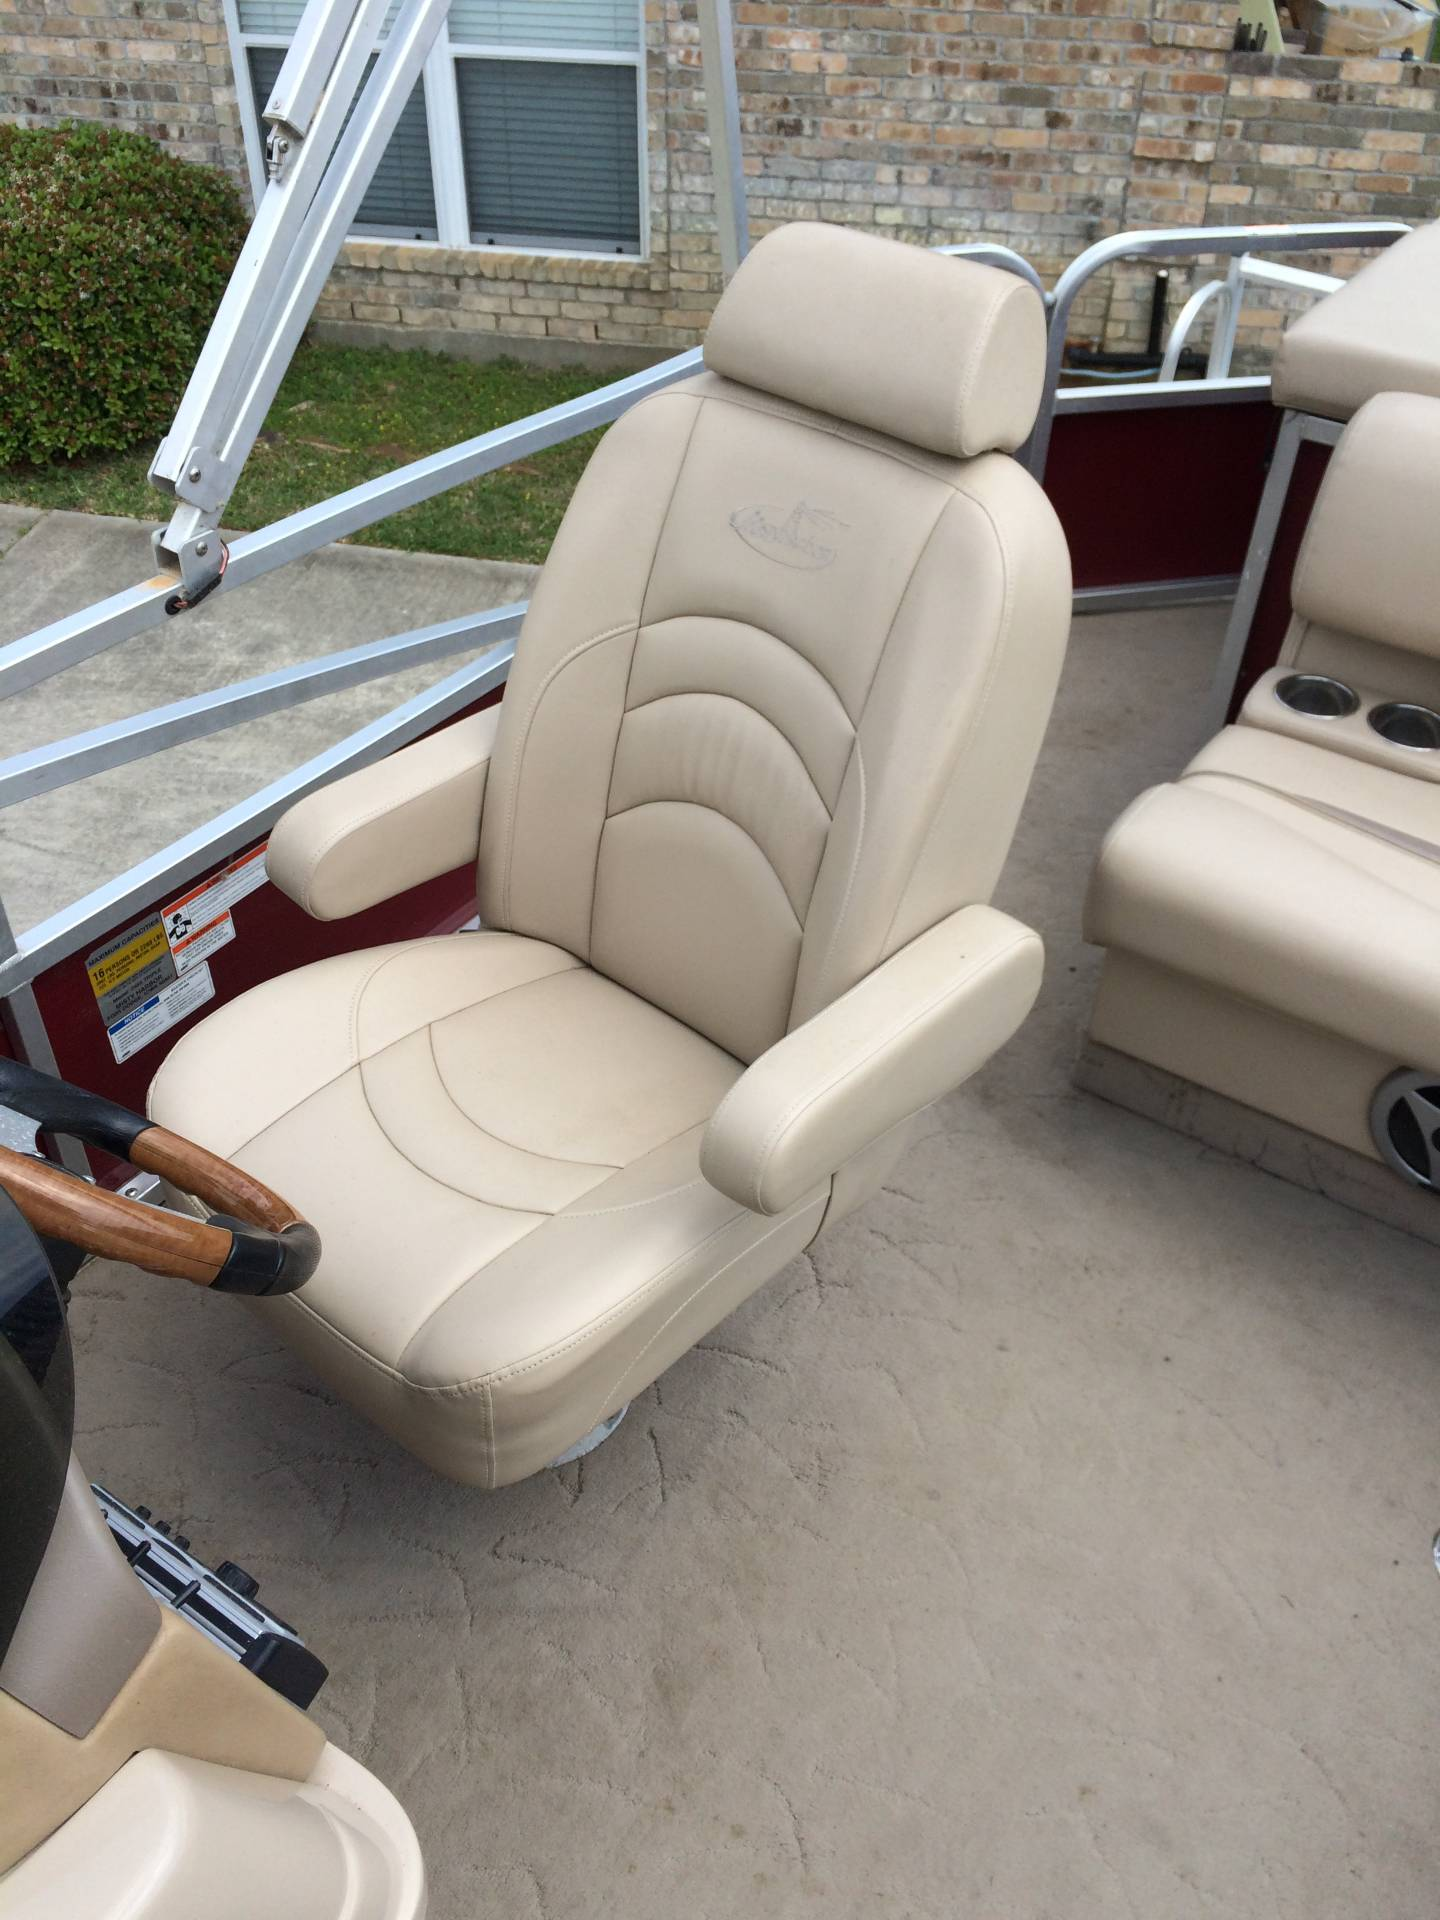 2010 Misty Harbor 2085DR Royale Cruiser in Willis, Texas